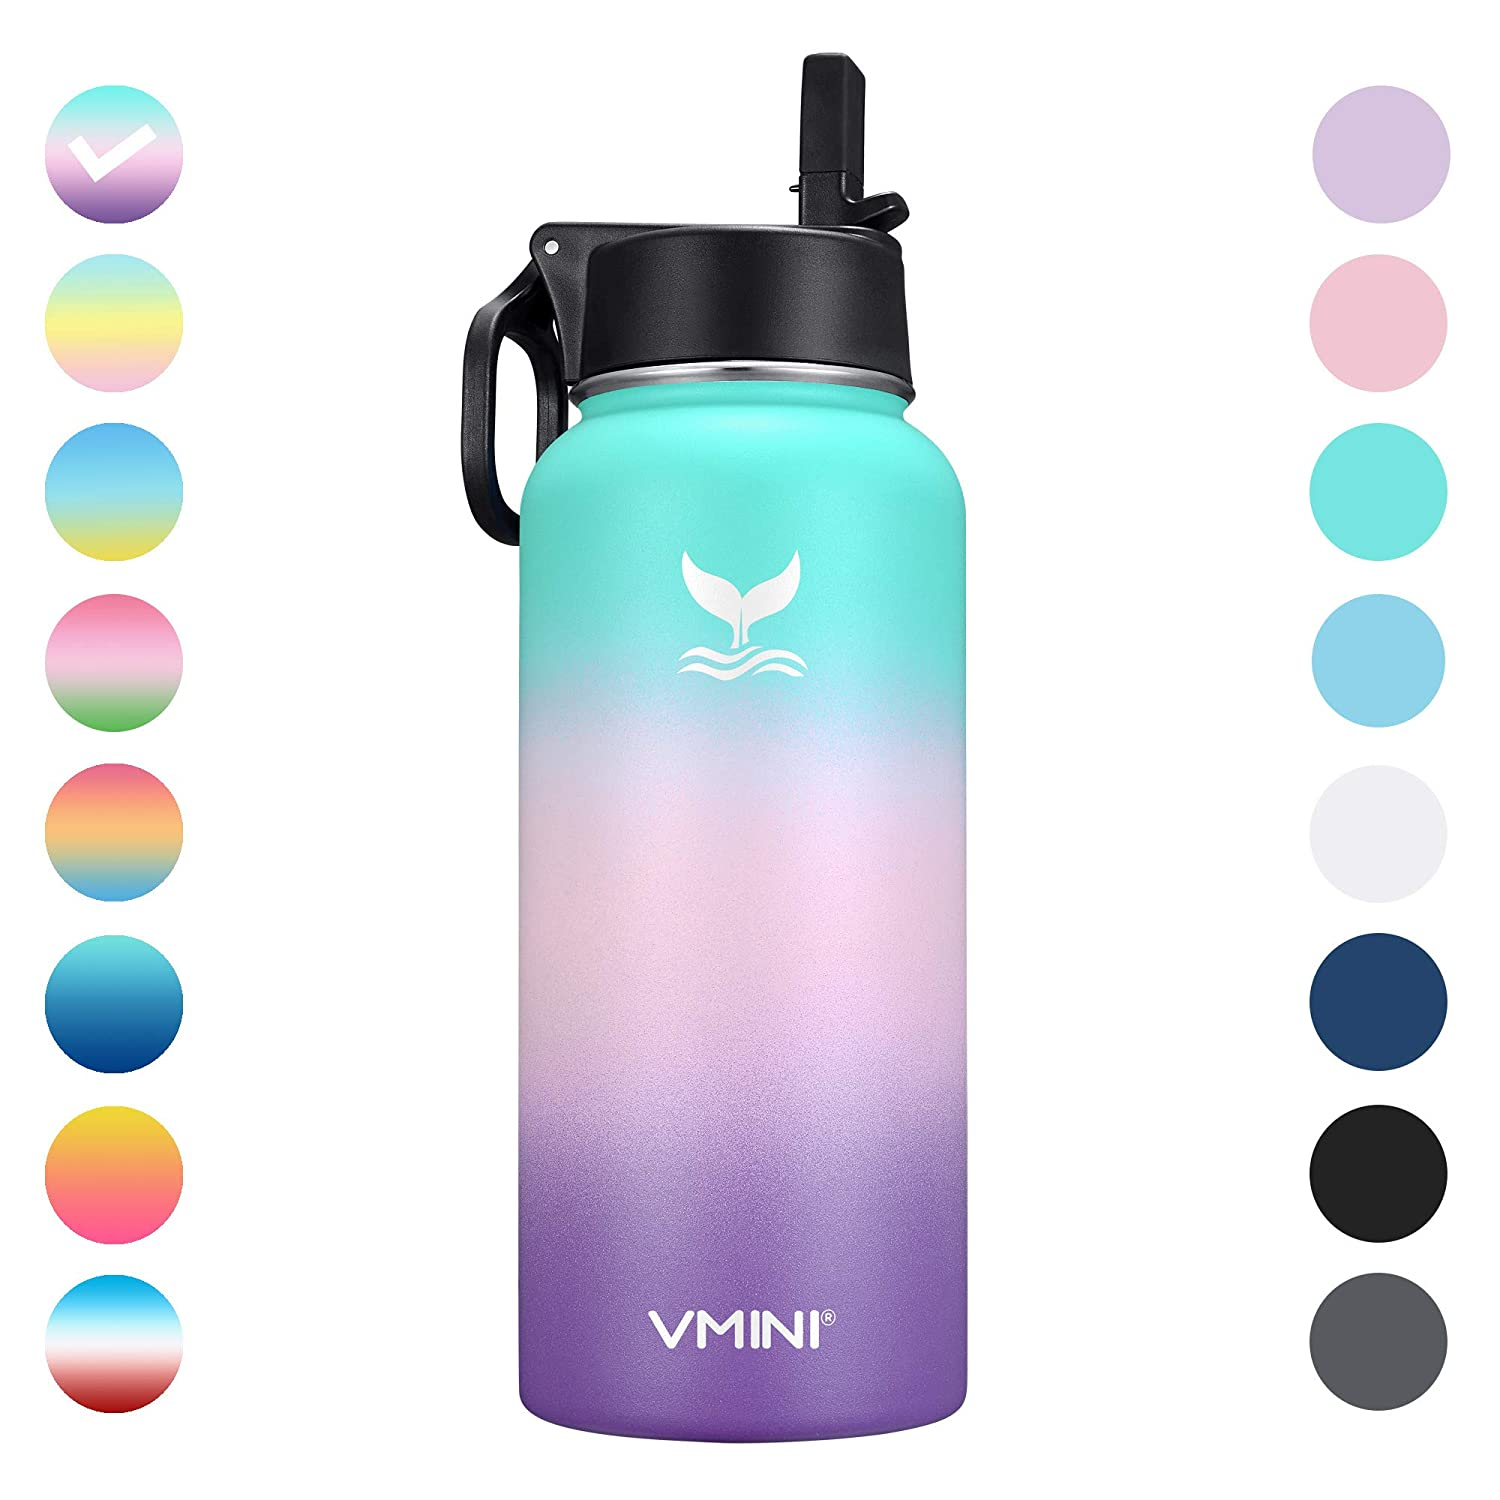 Vmini Water Bottle with New Wide Handle Straw Lid, Wide Mouth Vacuum Insulated 18/8 Stainless Steel, 32 oz, Gradient